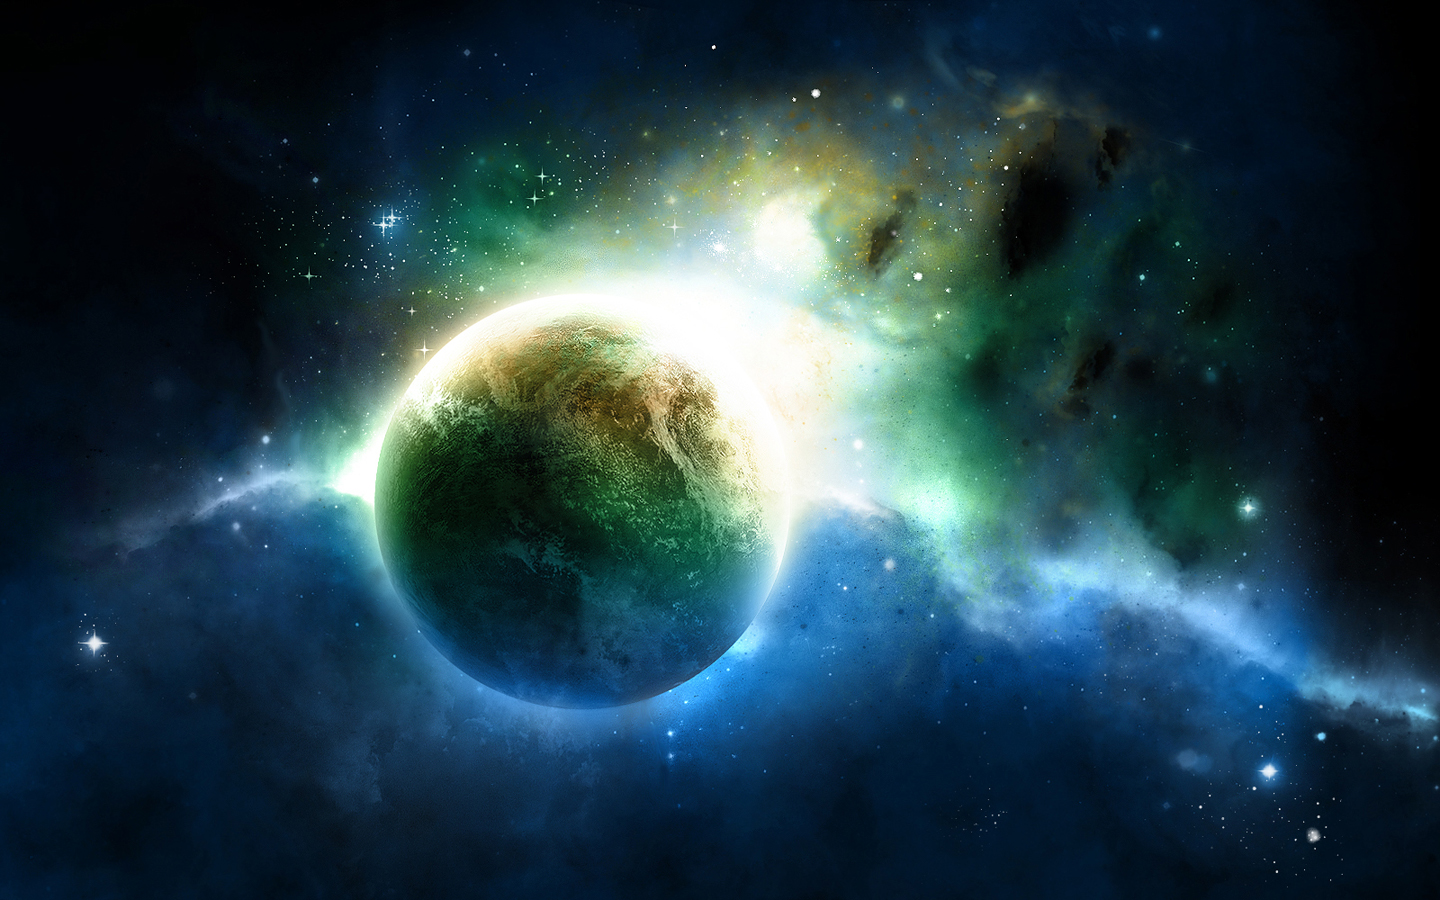 Space fantasy wallpaper set 4 awesome wallpapers for Space wallpaper for rooms